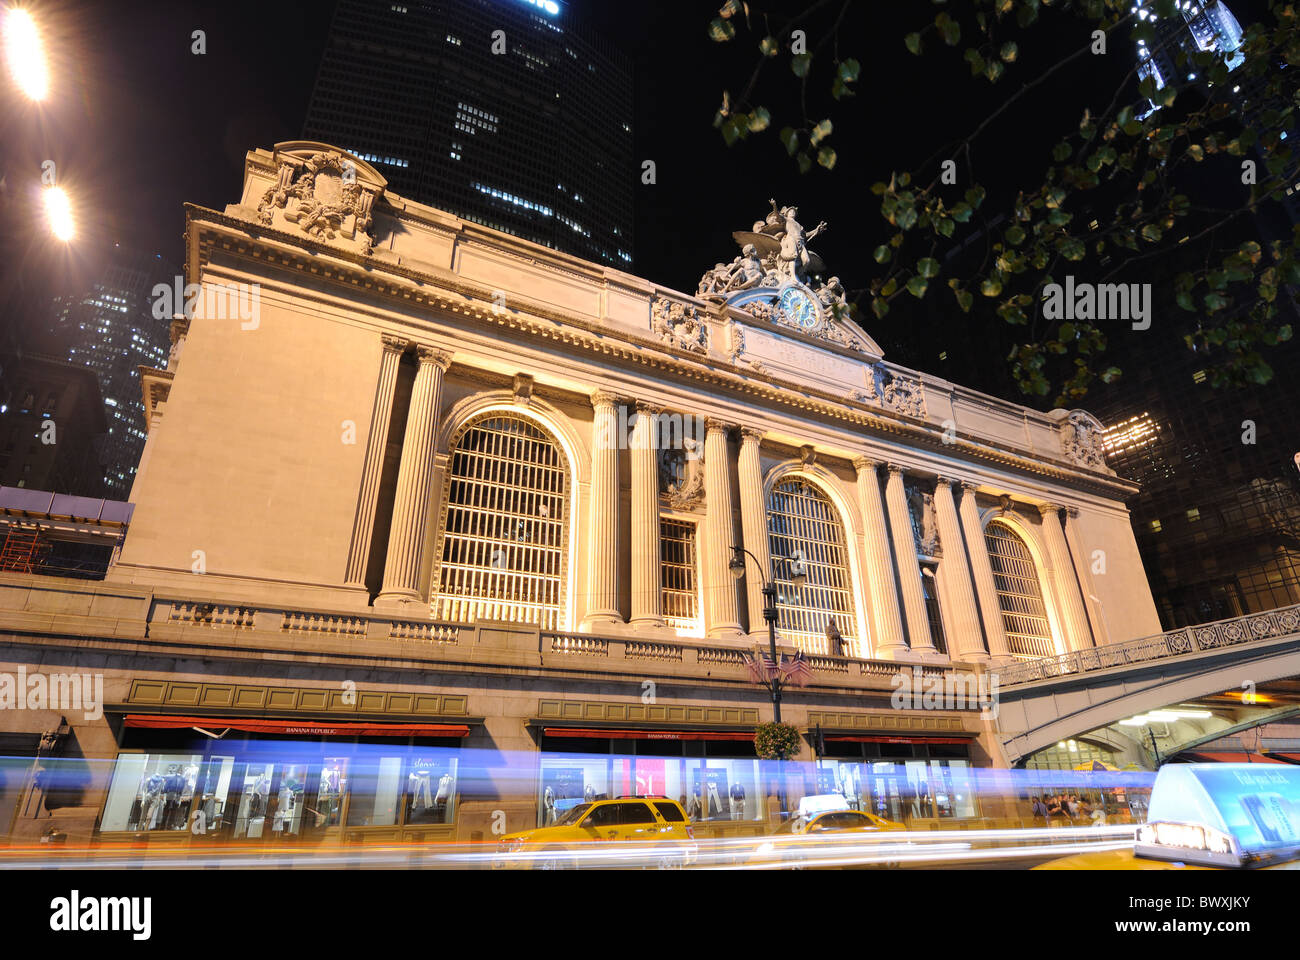 Grand Central Terminal at 42nd Street in New York, New York, USA. Stock Photo